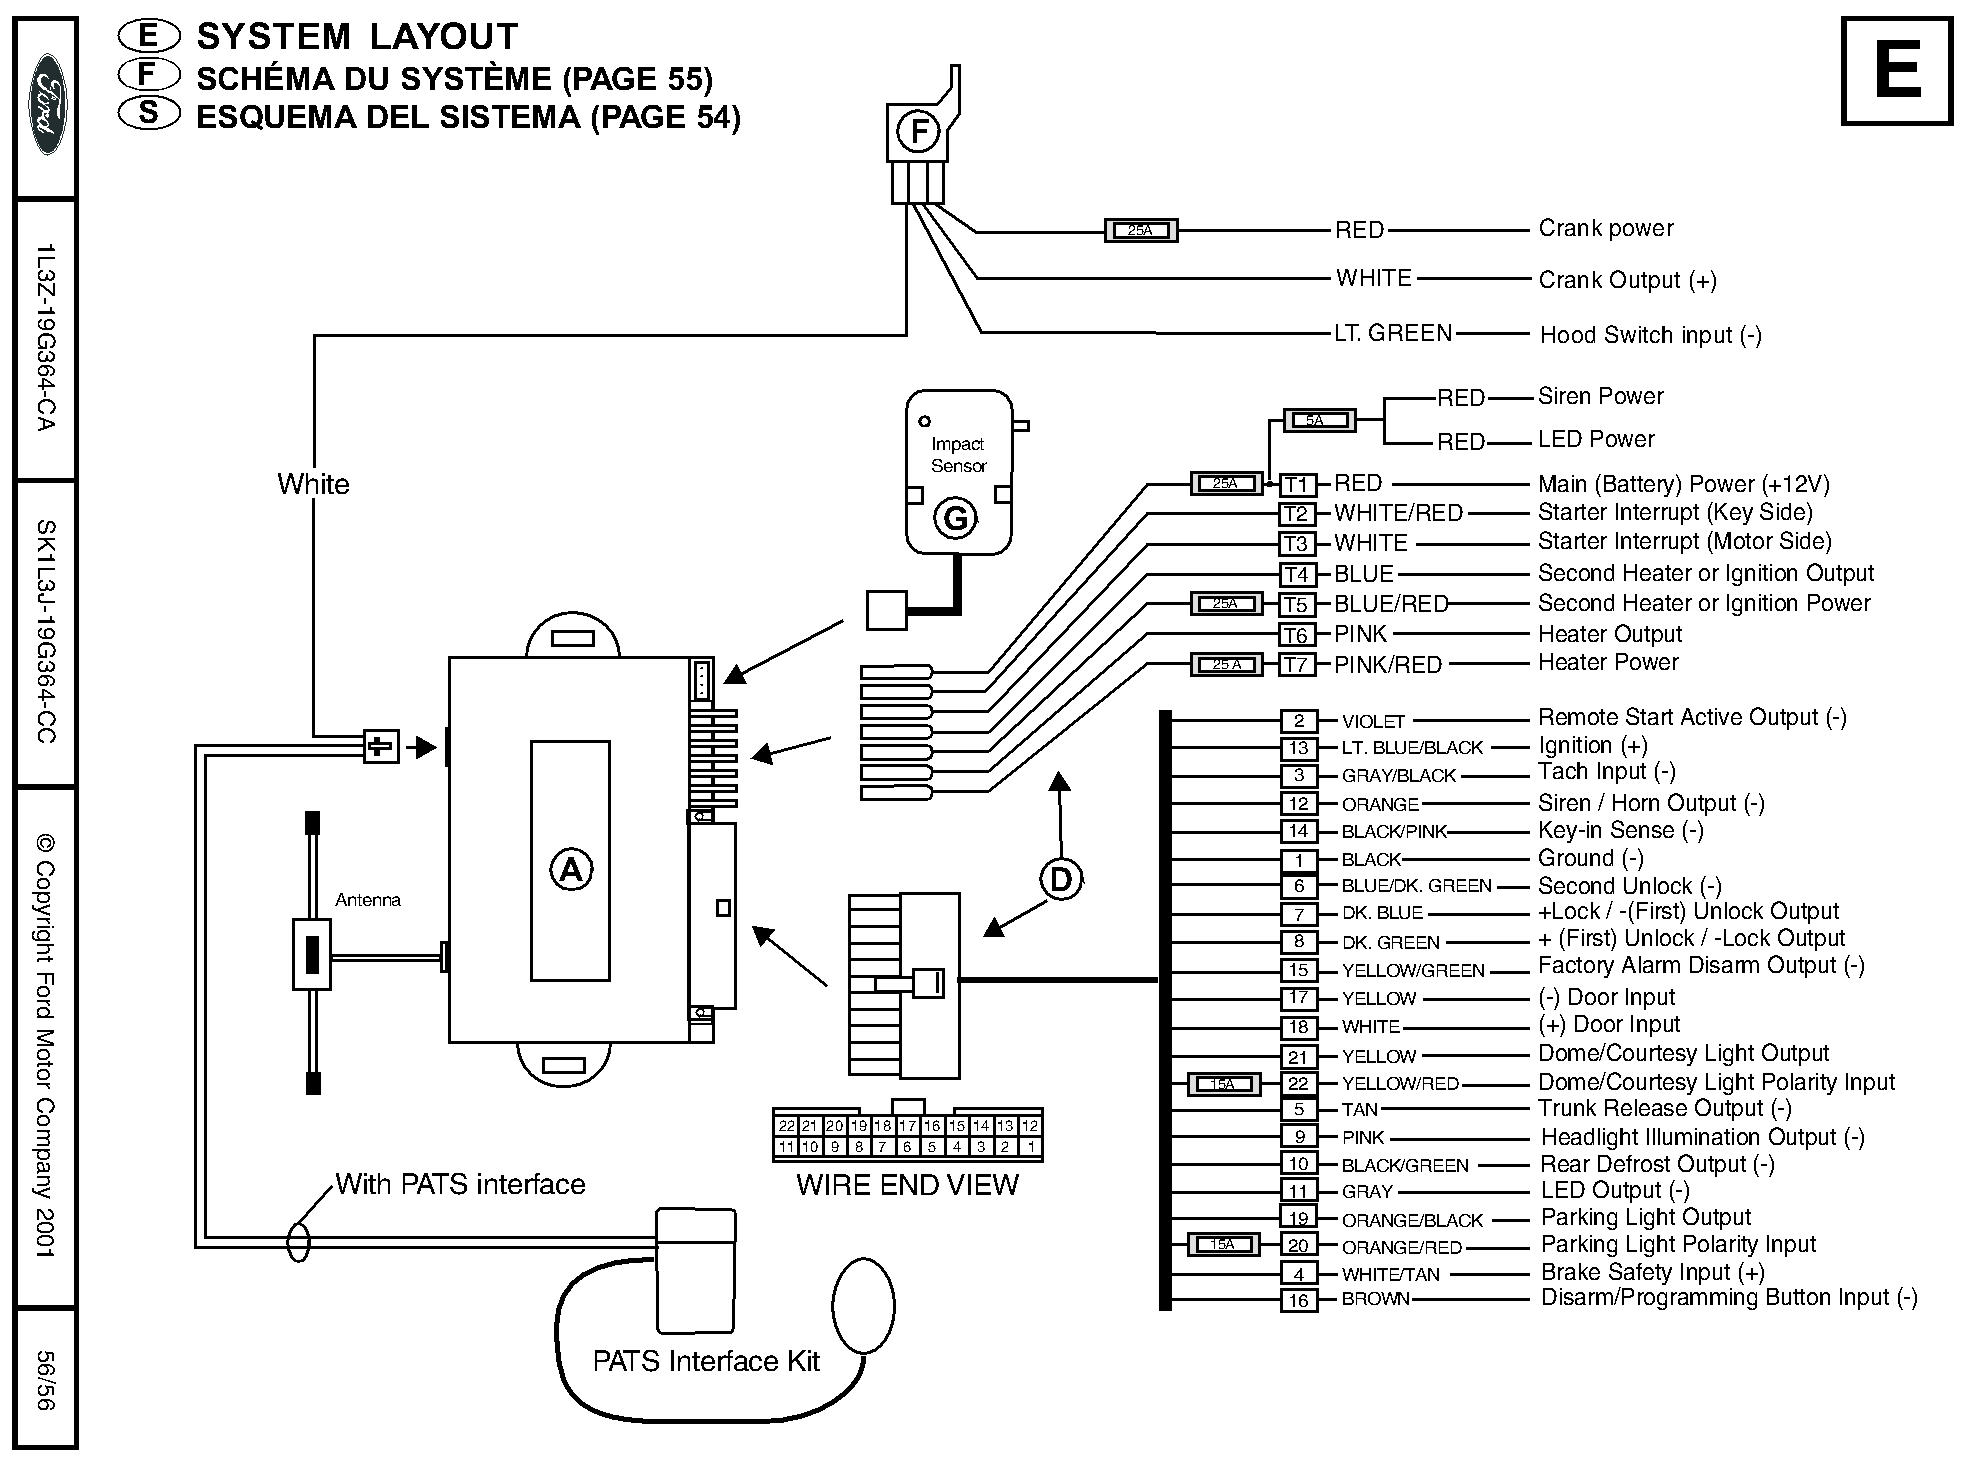 2005 Mazda 3 Remote Start Wiring Diagram : Toyota rear ke diagram free engine image for user